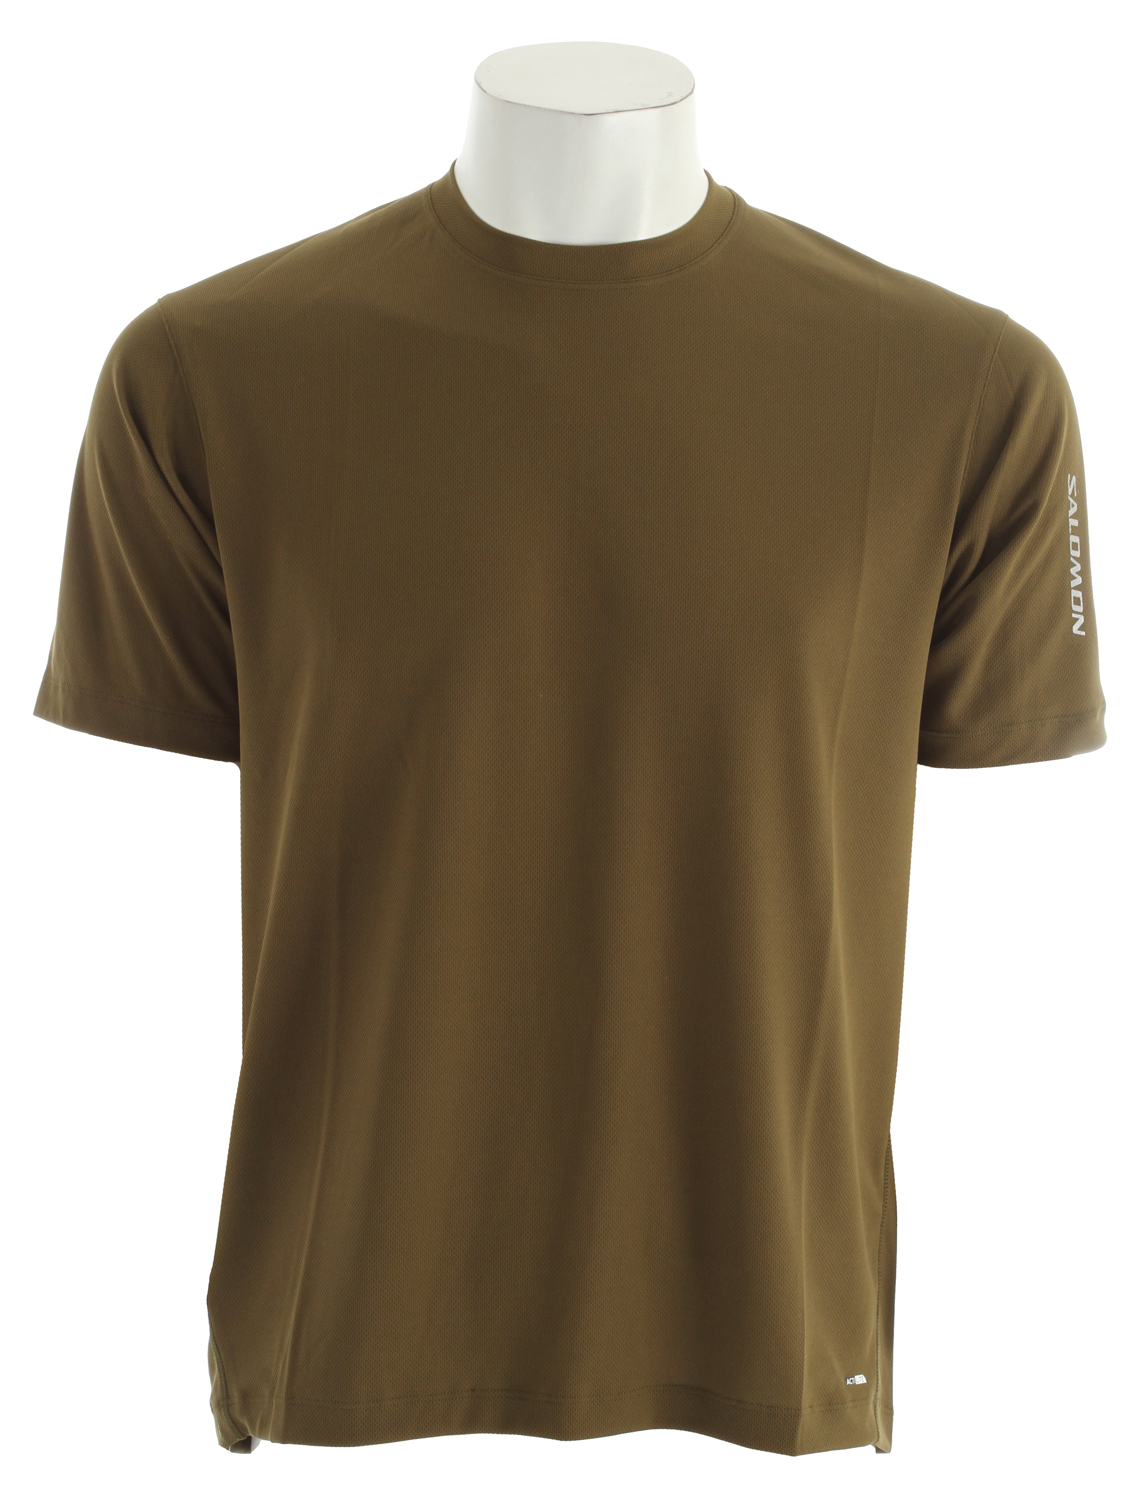 Fitness Very light, very breathable running T-shirt with reflective detailing and a relaxed fit.Key Features of the Salomon X T-Shirt: Flatlock Seams Reflective Branding actiLITE™ Poly Mock Eyelet Relax Fit - $20.95